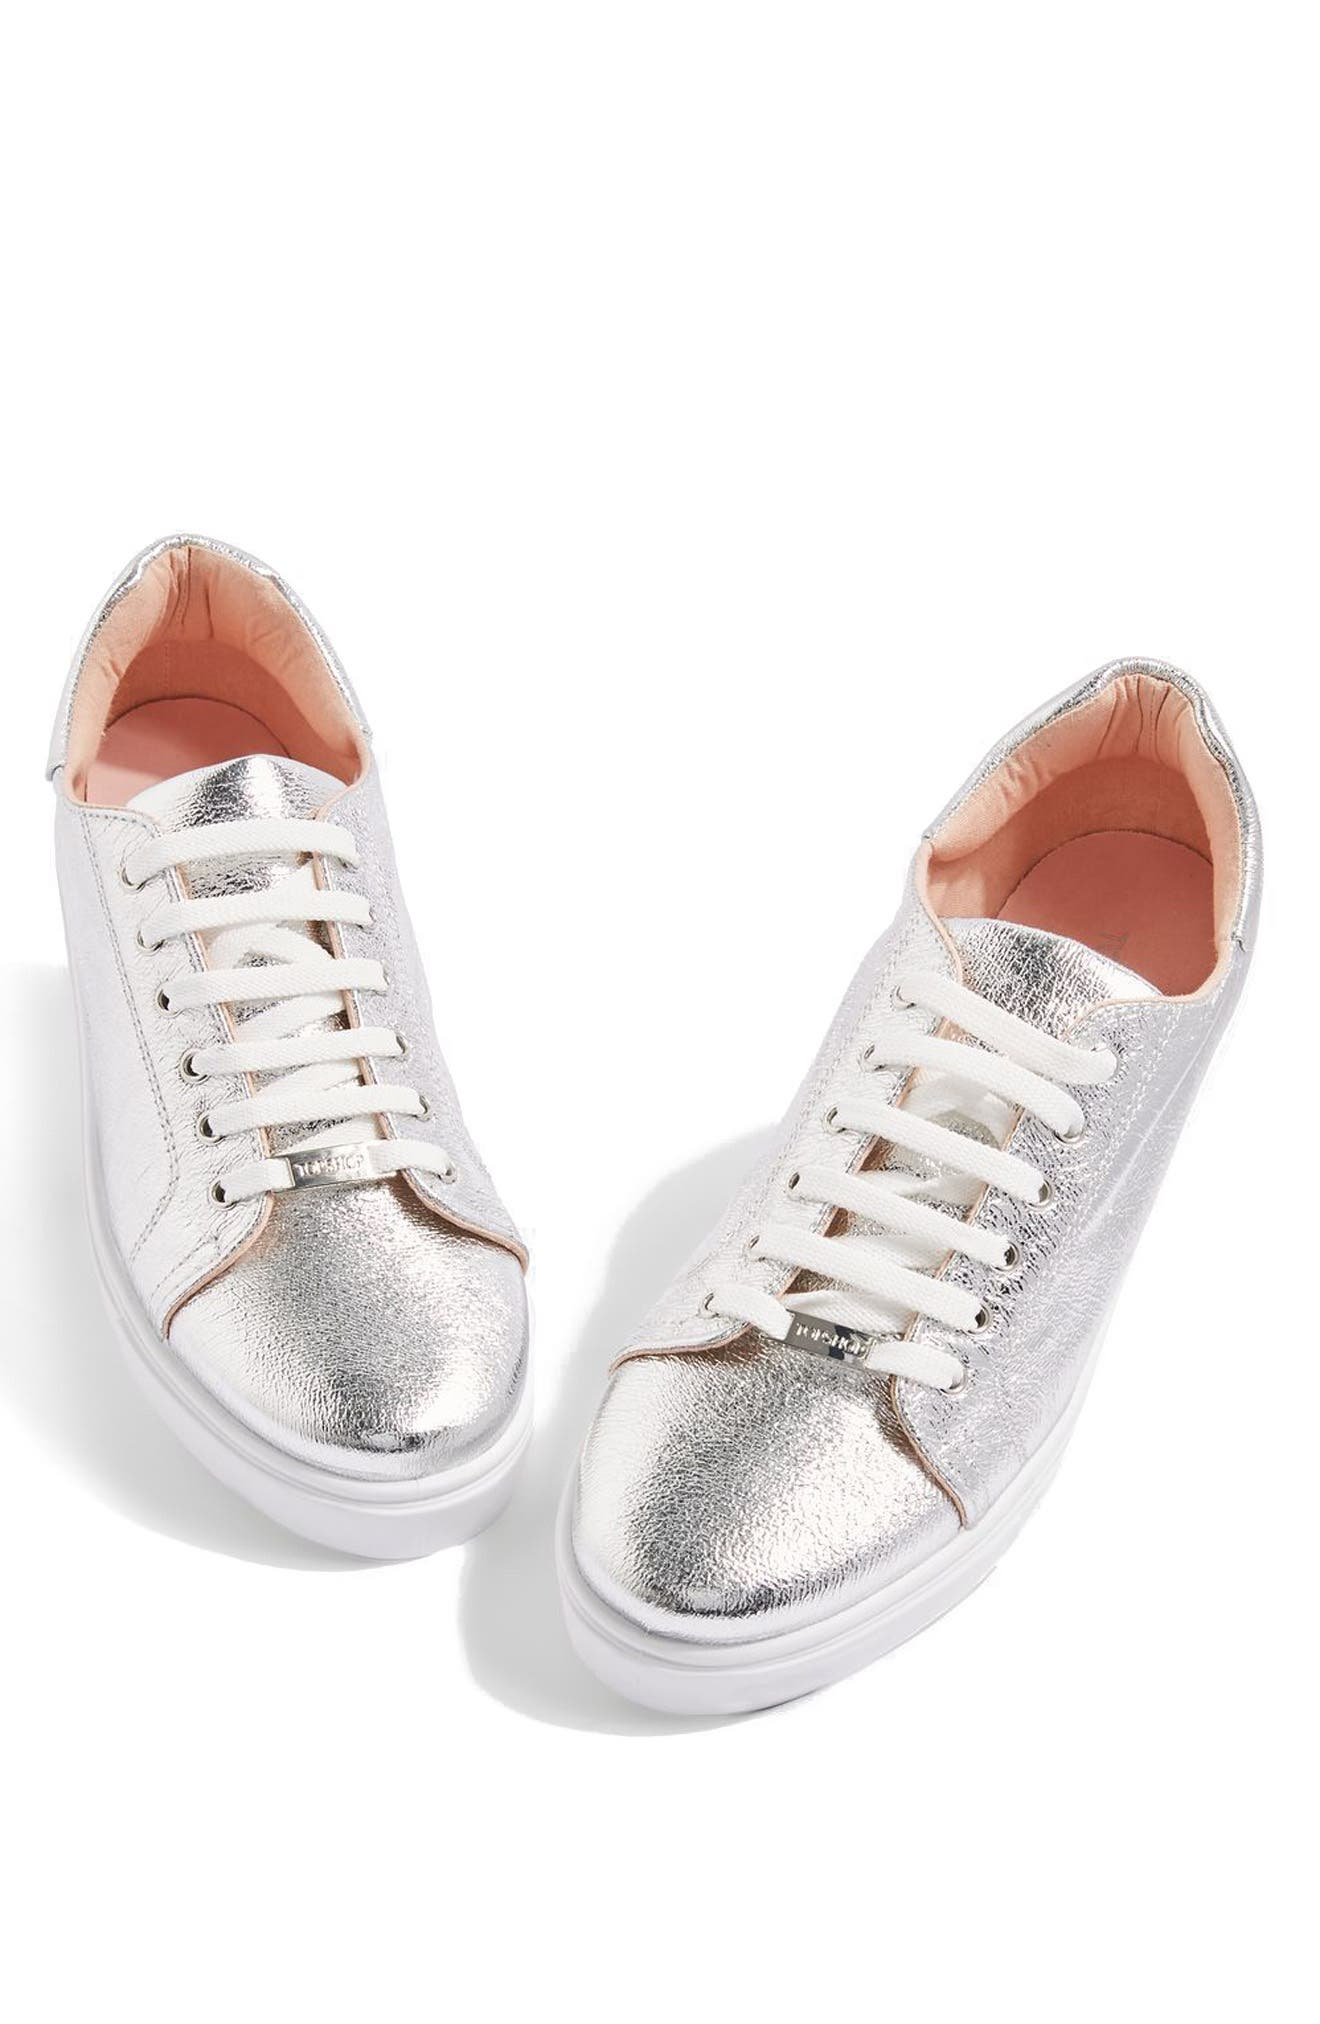 Cosmo Metallic Lace-Up Sneaker,                             Main thumbnail 1, color,                             040